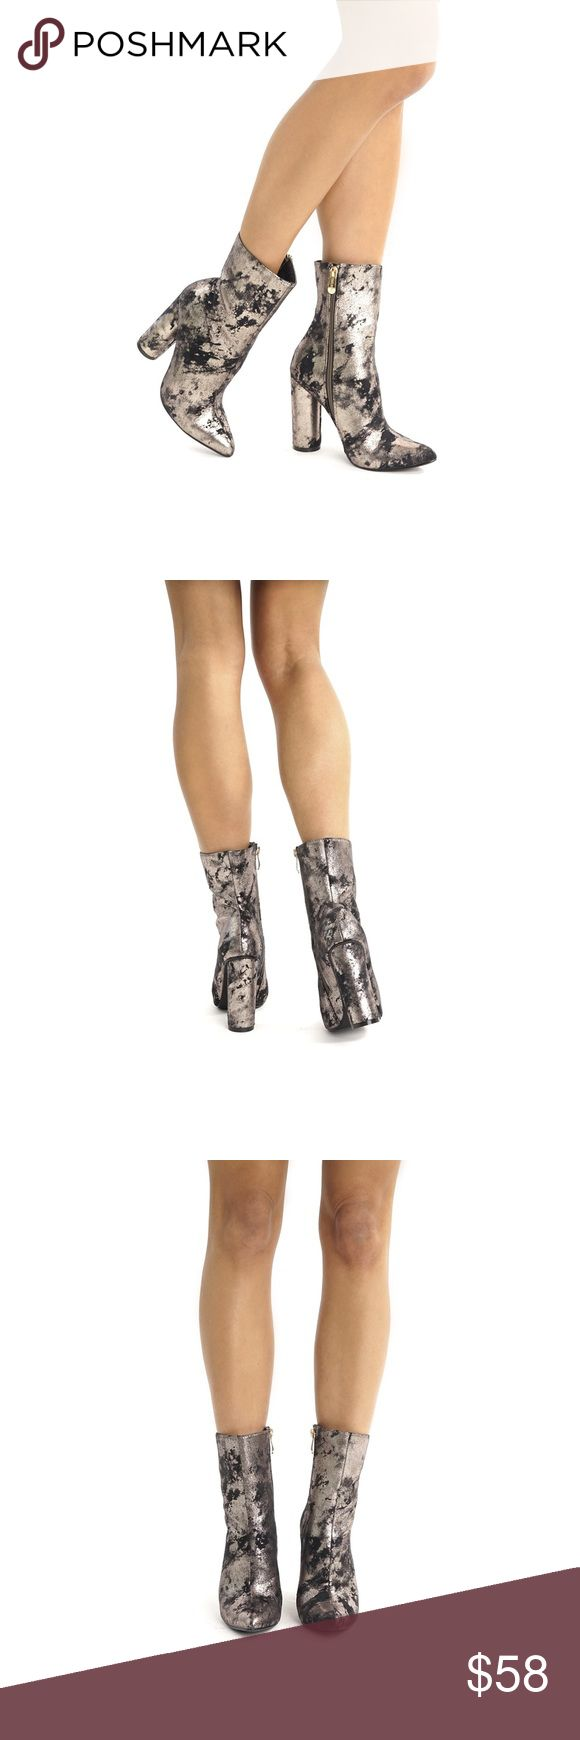 """METALLIC ANKLE BOOTIES The Silver Pewter Metallic Ankle Boots are your new ultimate style weapon! Chic, metallic & black spatter print covers a pointed toe upper that rises into a fitted shaft. All pictures showing actual product. Pictures taken exclusively for Style Link Miami. Price firm  Lightly cushioned insole Rubber sole  4.5"""" rounded heel 8.25"""" zipper at instep Runs true to size Model is wearing a size 7 Style Link Miami Shoes Ankle Boots & Booties"""